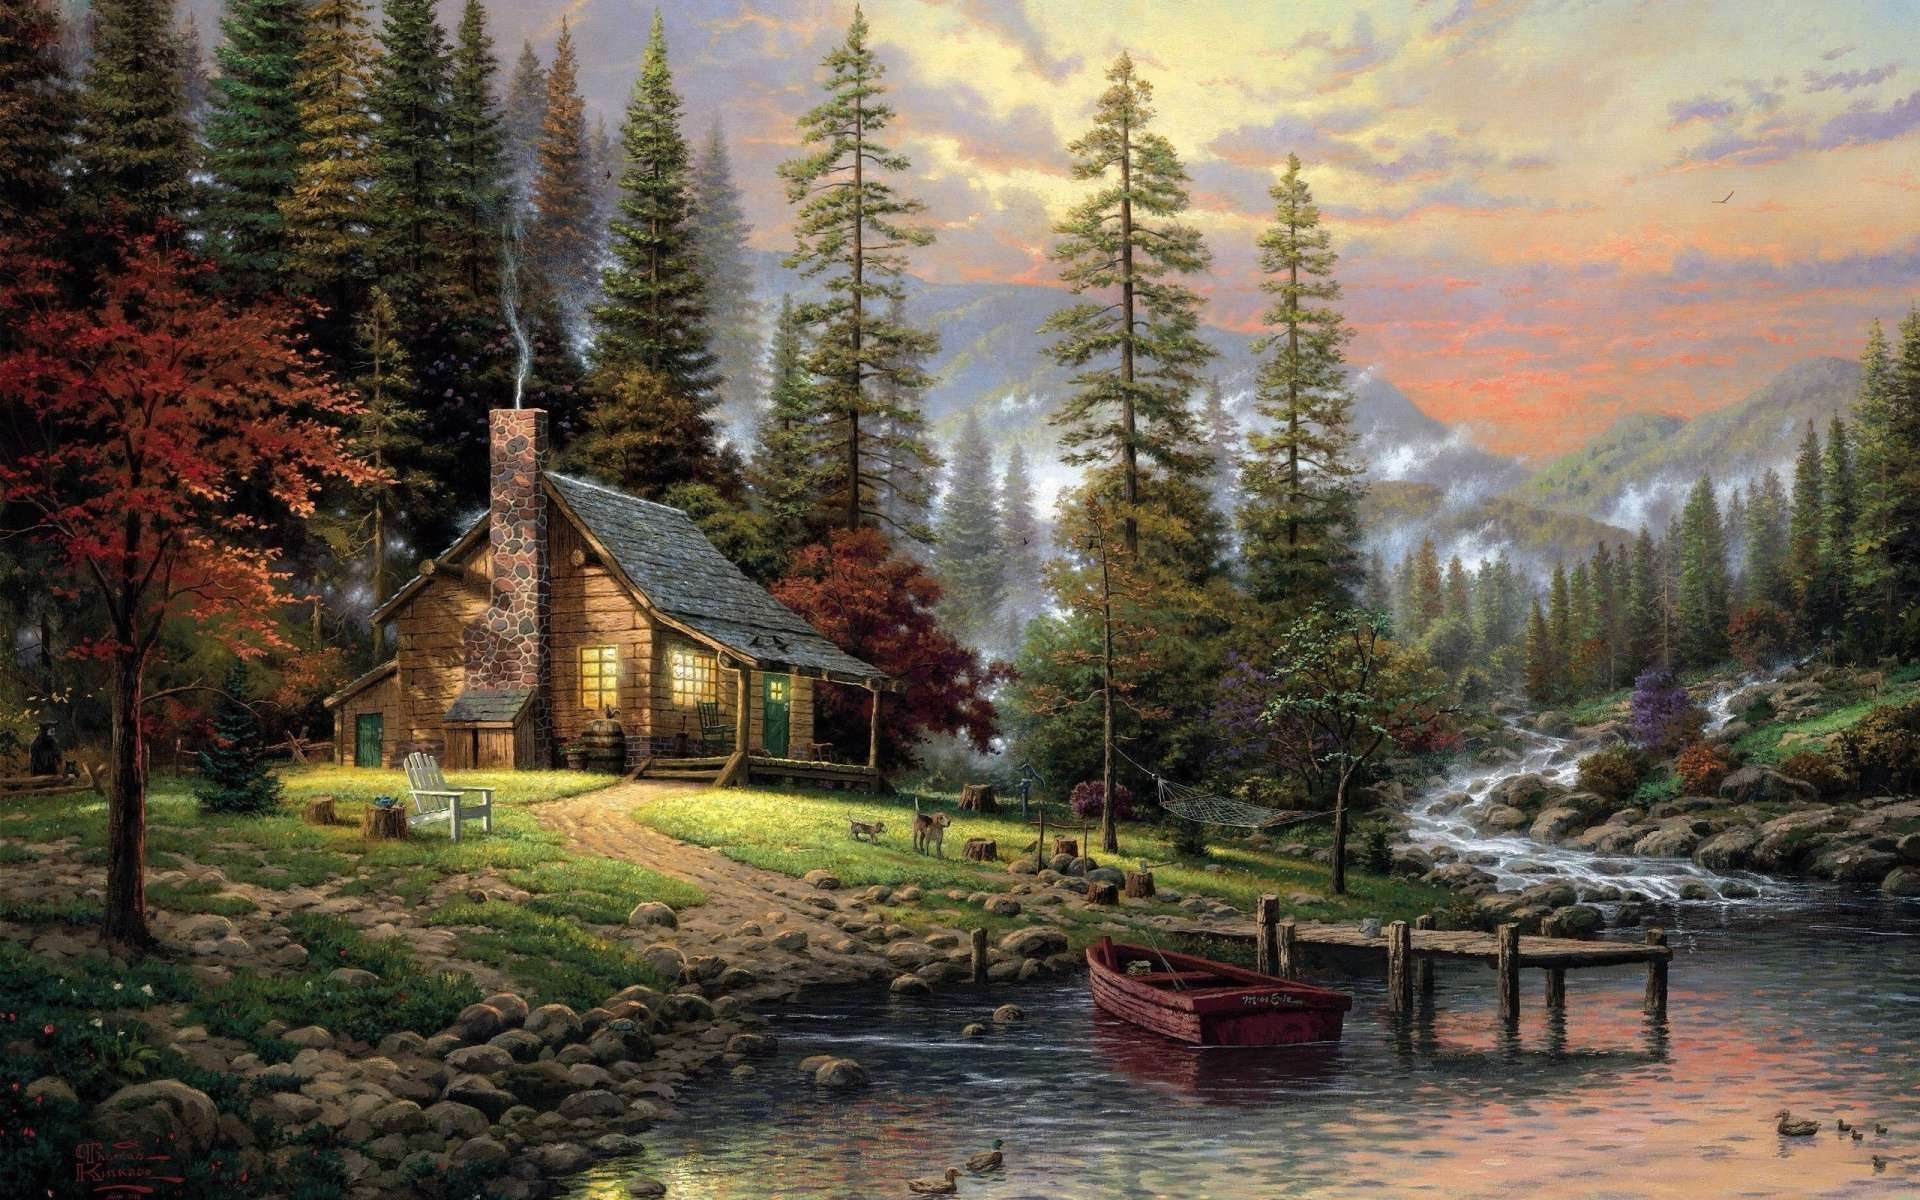 General 1920x1200 nature landscape painting artwork trees forest clouds Thomas Kinkade house mountains sunset river boat pier dog mist stones cabin